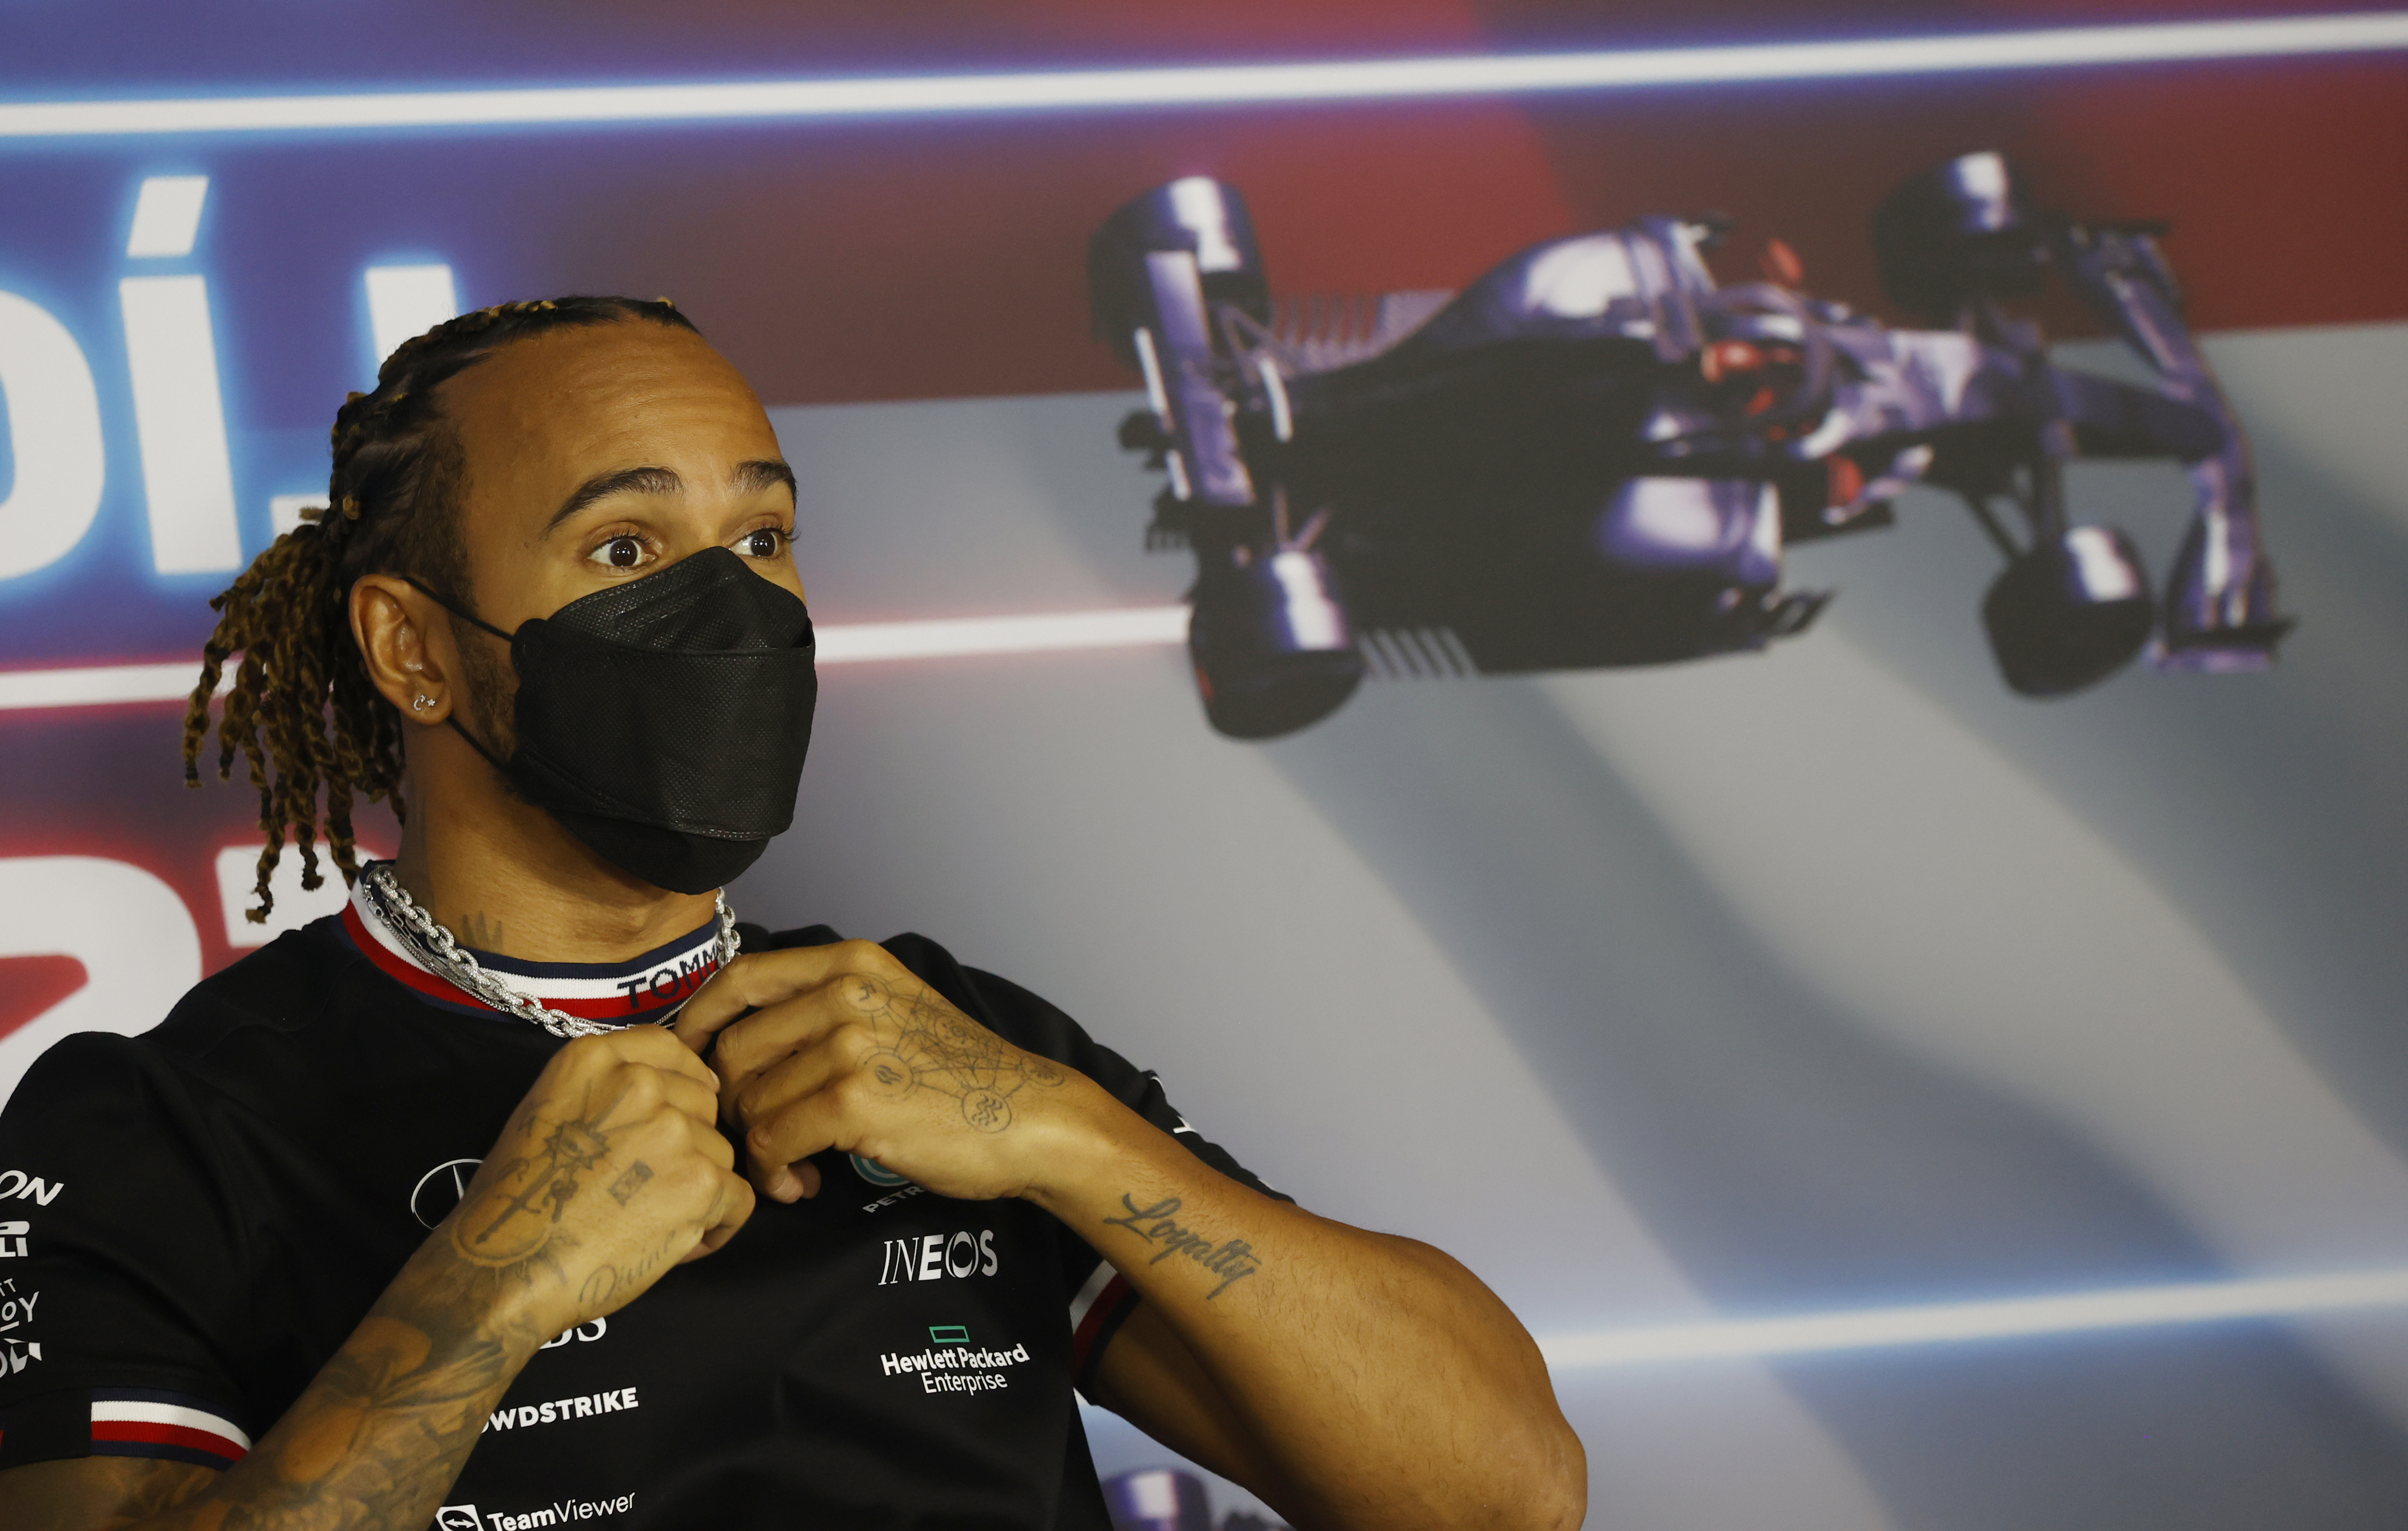 Formula One F1 - Hungarian Grand Prix - Hungaroring, Budapest, Hungary - July 29, 2021 Mercedes' Lewis Hamilton during a press conference ahead of the Hungarian Grand Prix Pool via REUTERS/Florion Goga